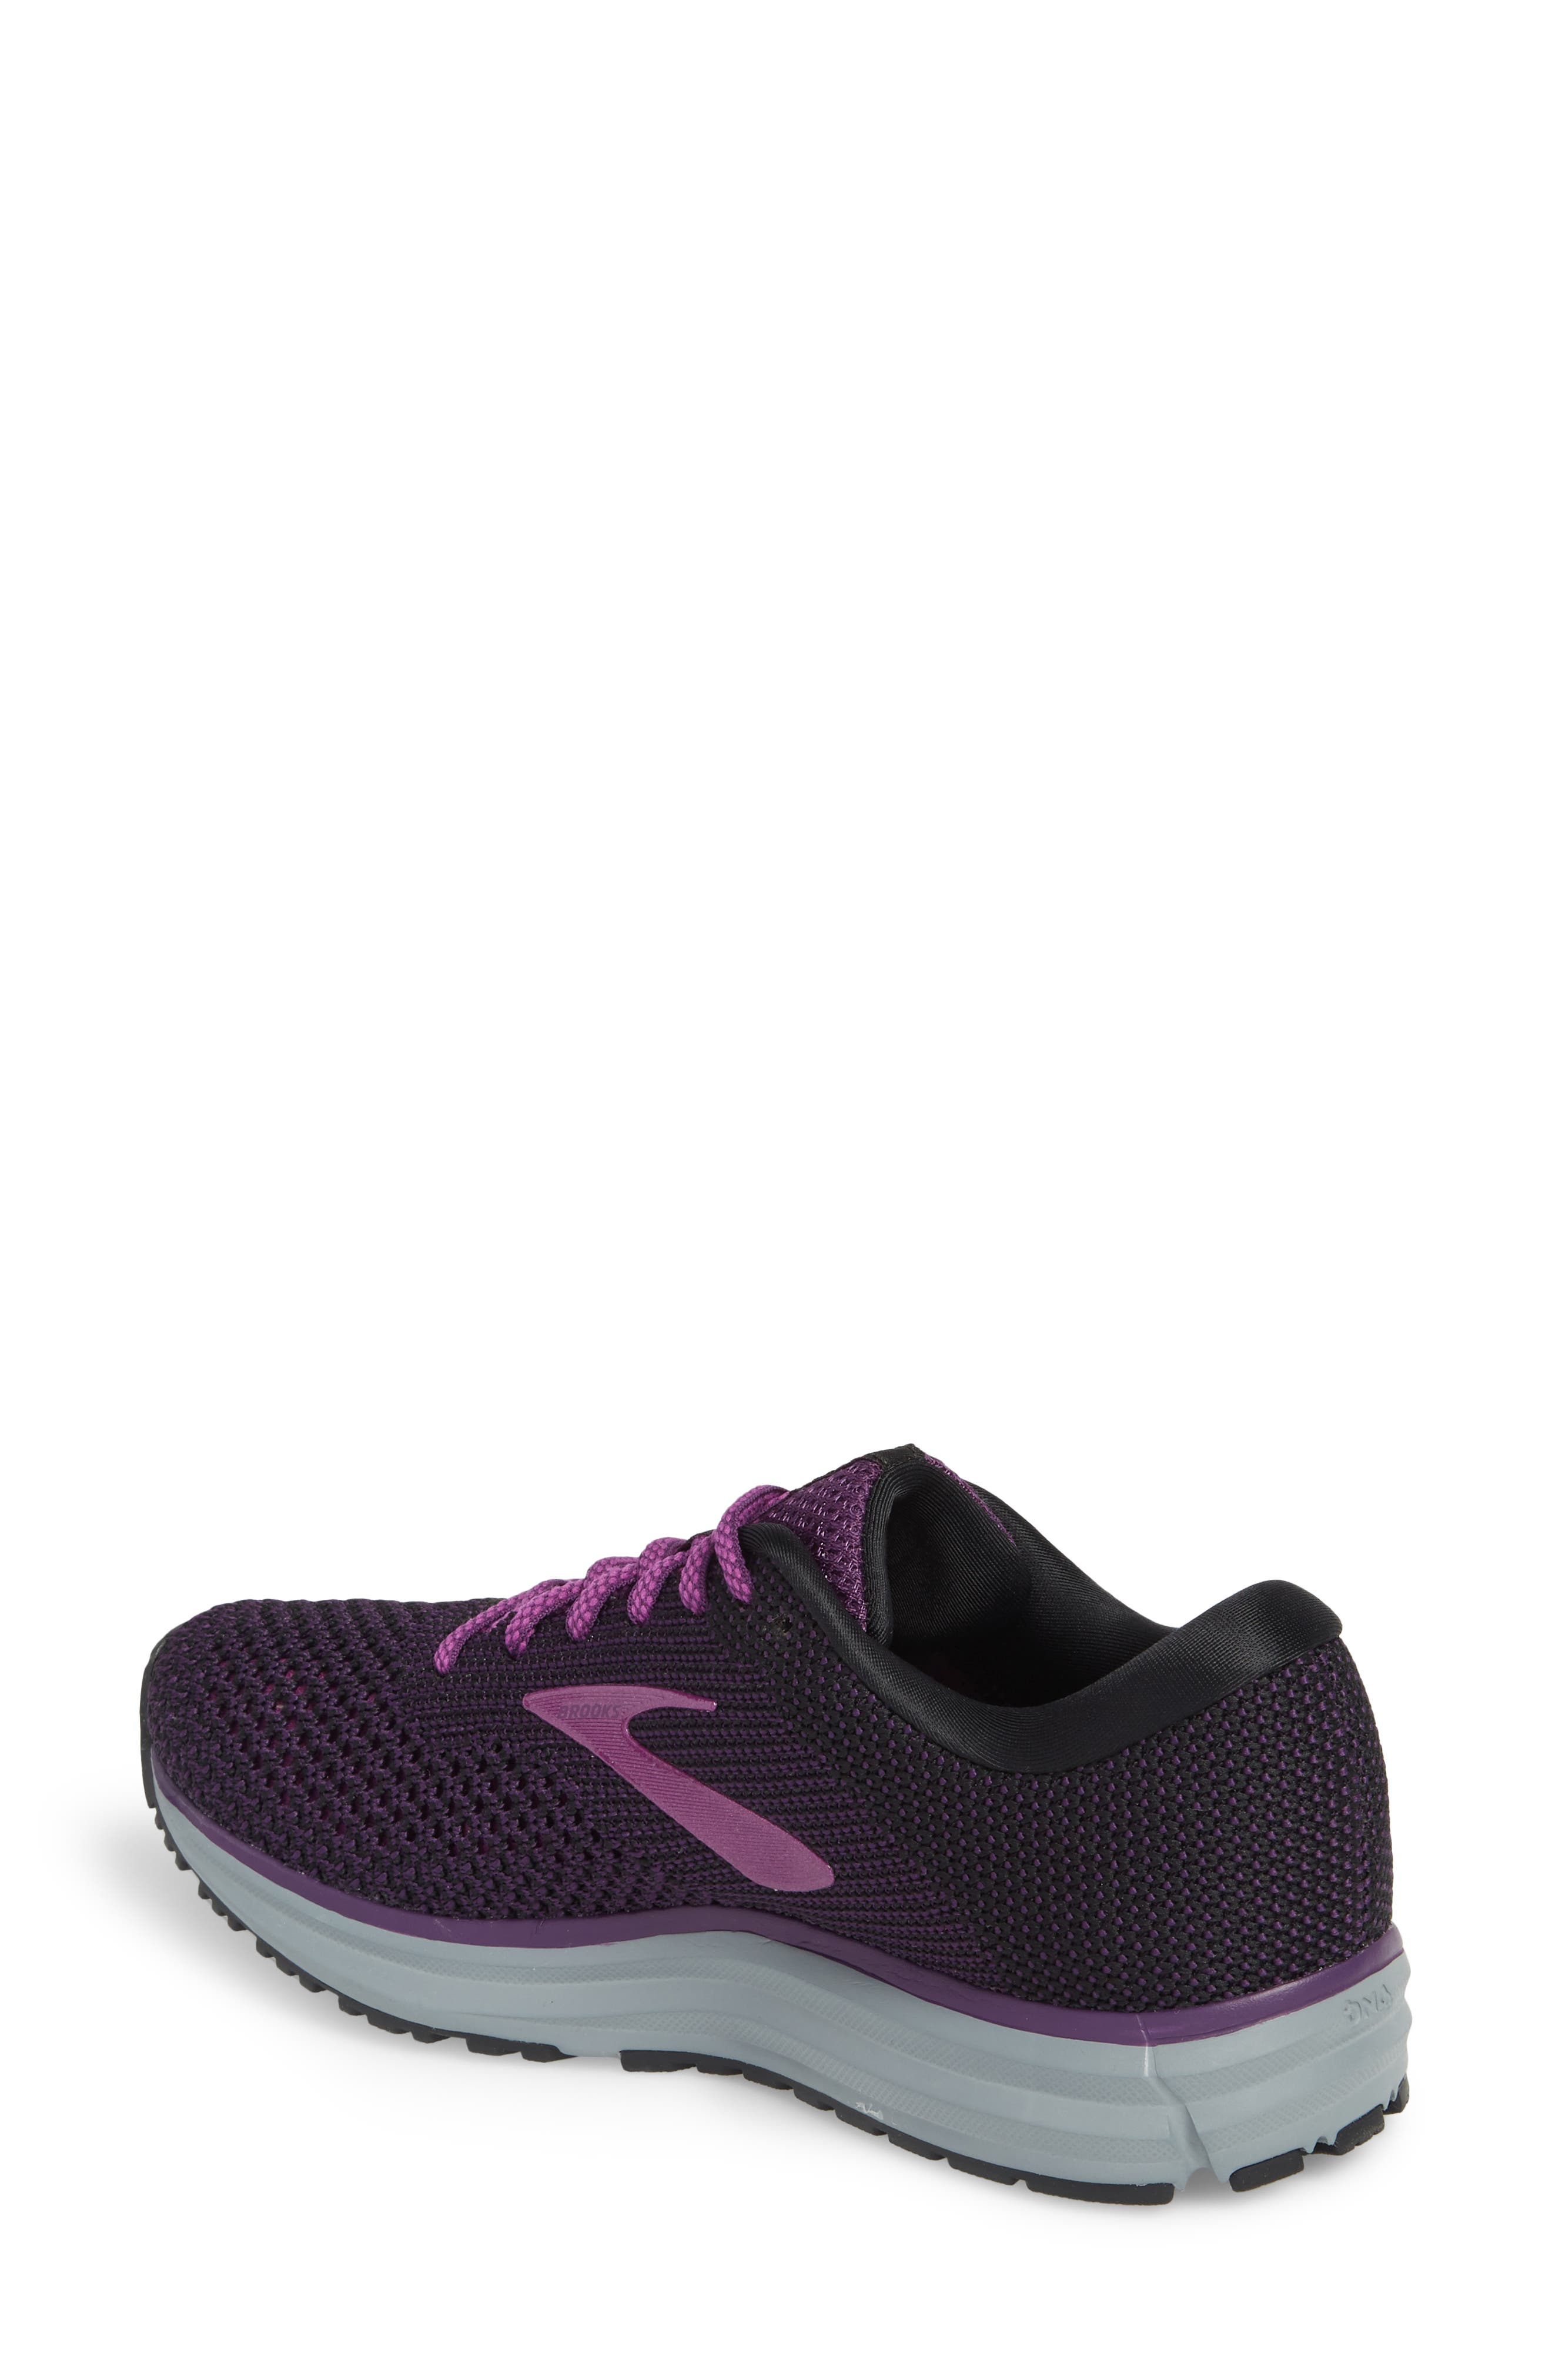 finest selection cfc5f ecd0a Women s Athletic Shoes Sale   Nordstrom